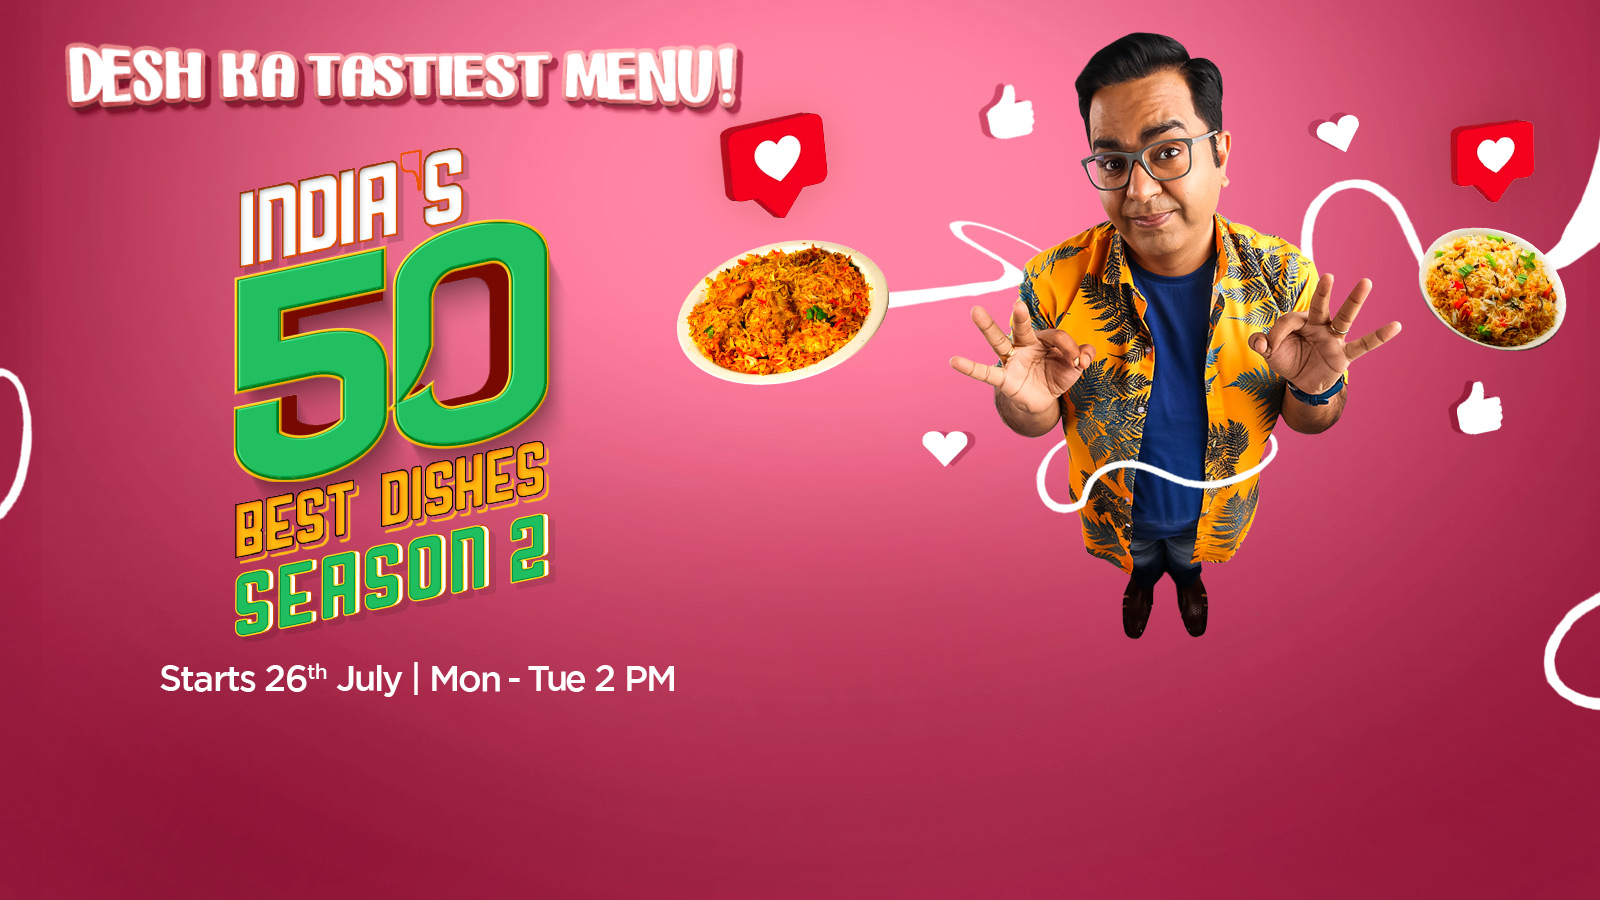 India's 50 Best Dishes - Season 2